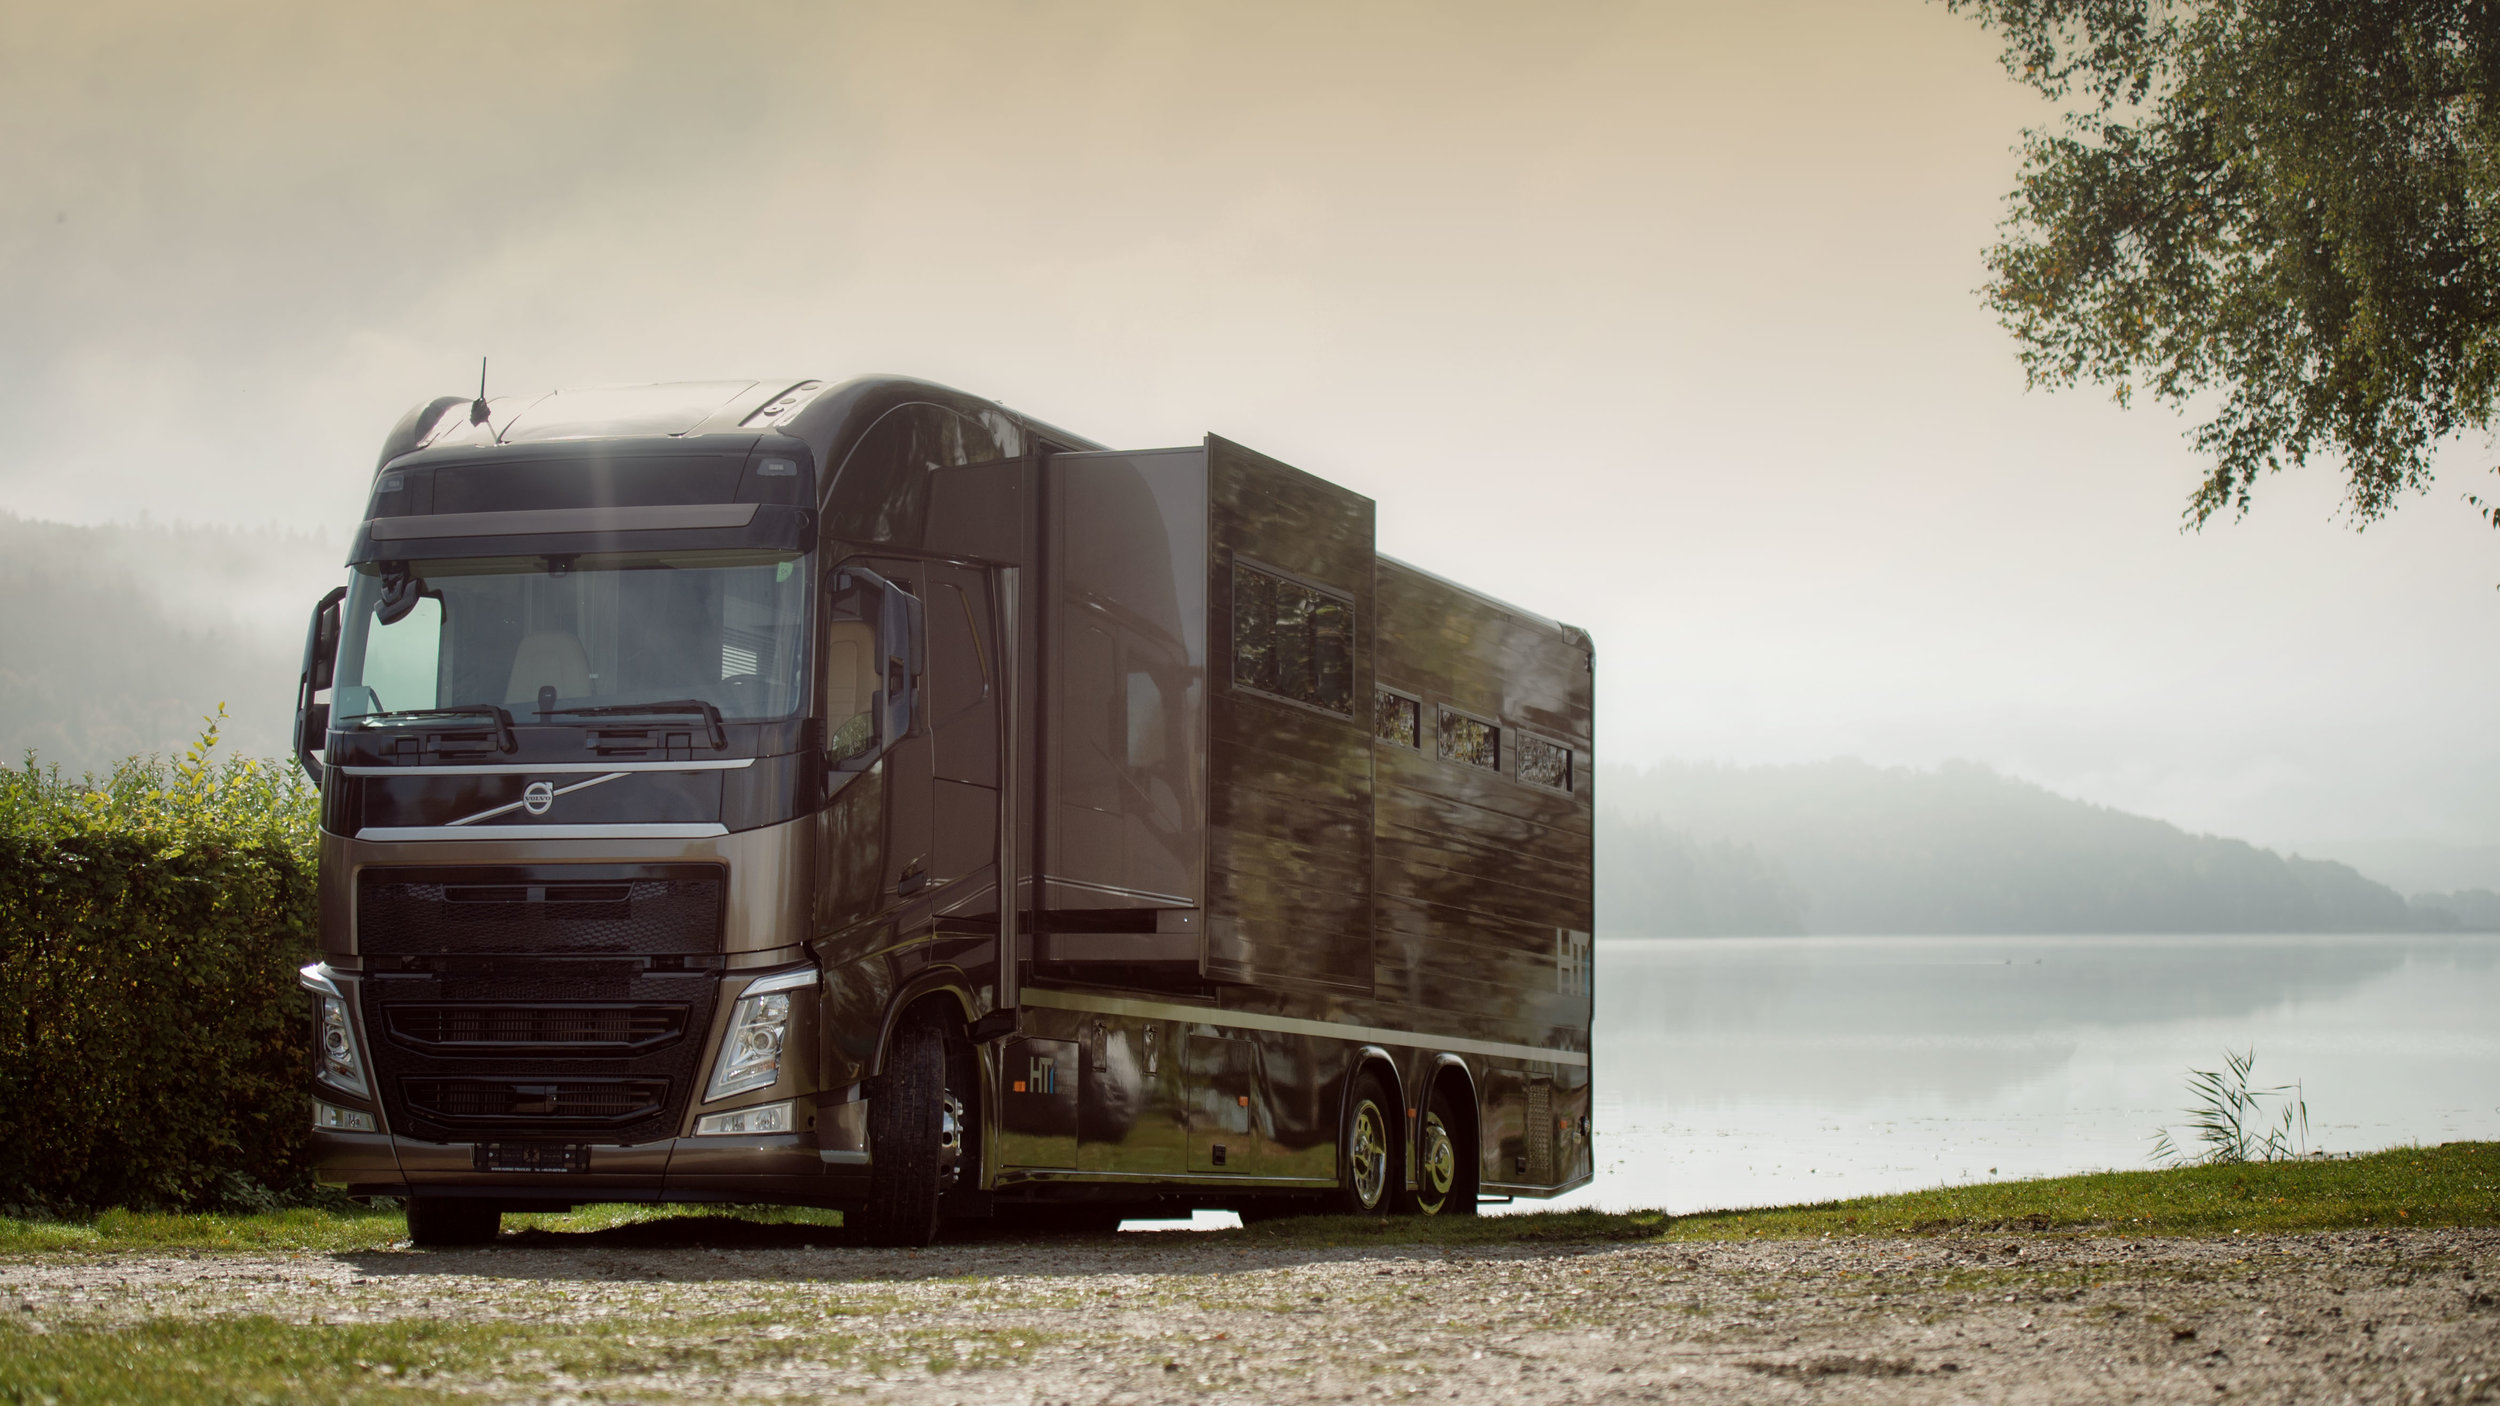 Horse Truck Pop out Volvo Aniko Towers Photo Oct17-144.jpg